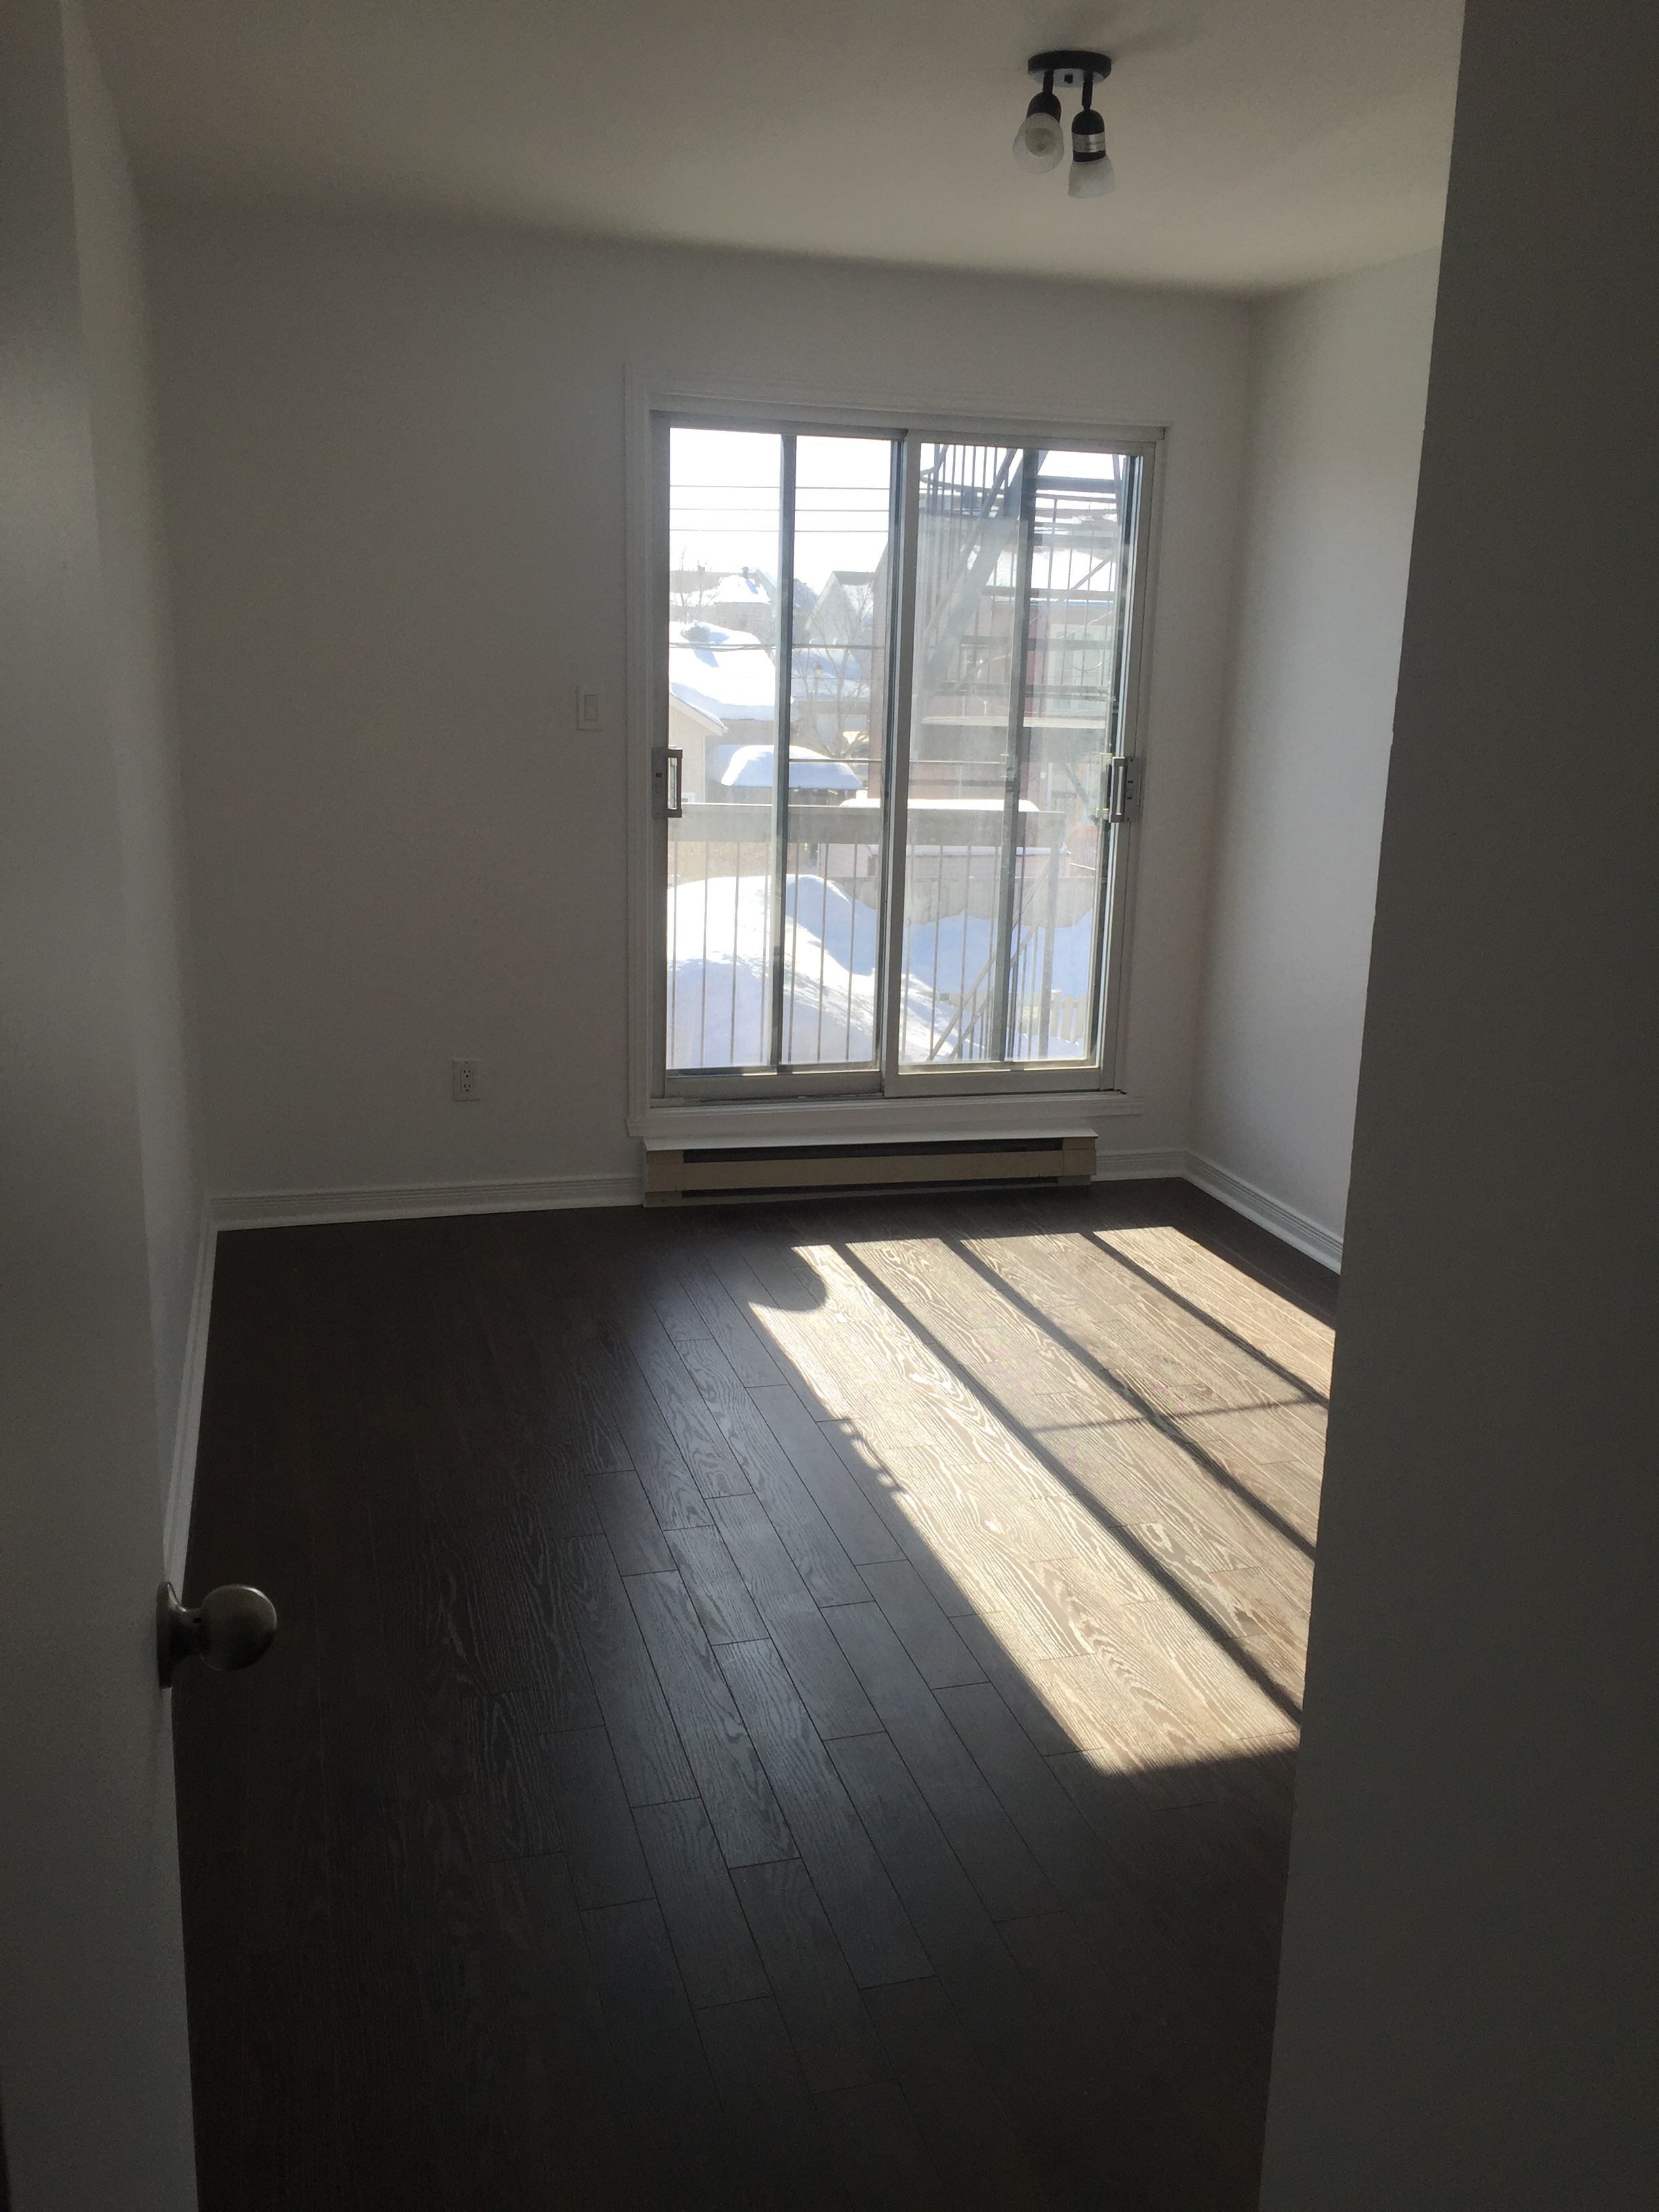 1 bedroom Apartments for rent in Pierrefonds-Roxboro at 18045-18125 Pierrefonds Boulevard - Photo 03 - RentersPages – L22166